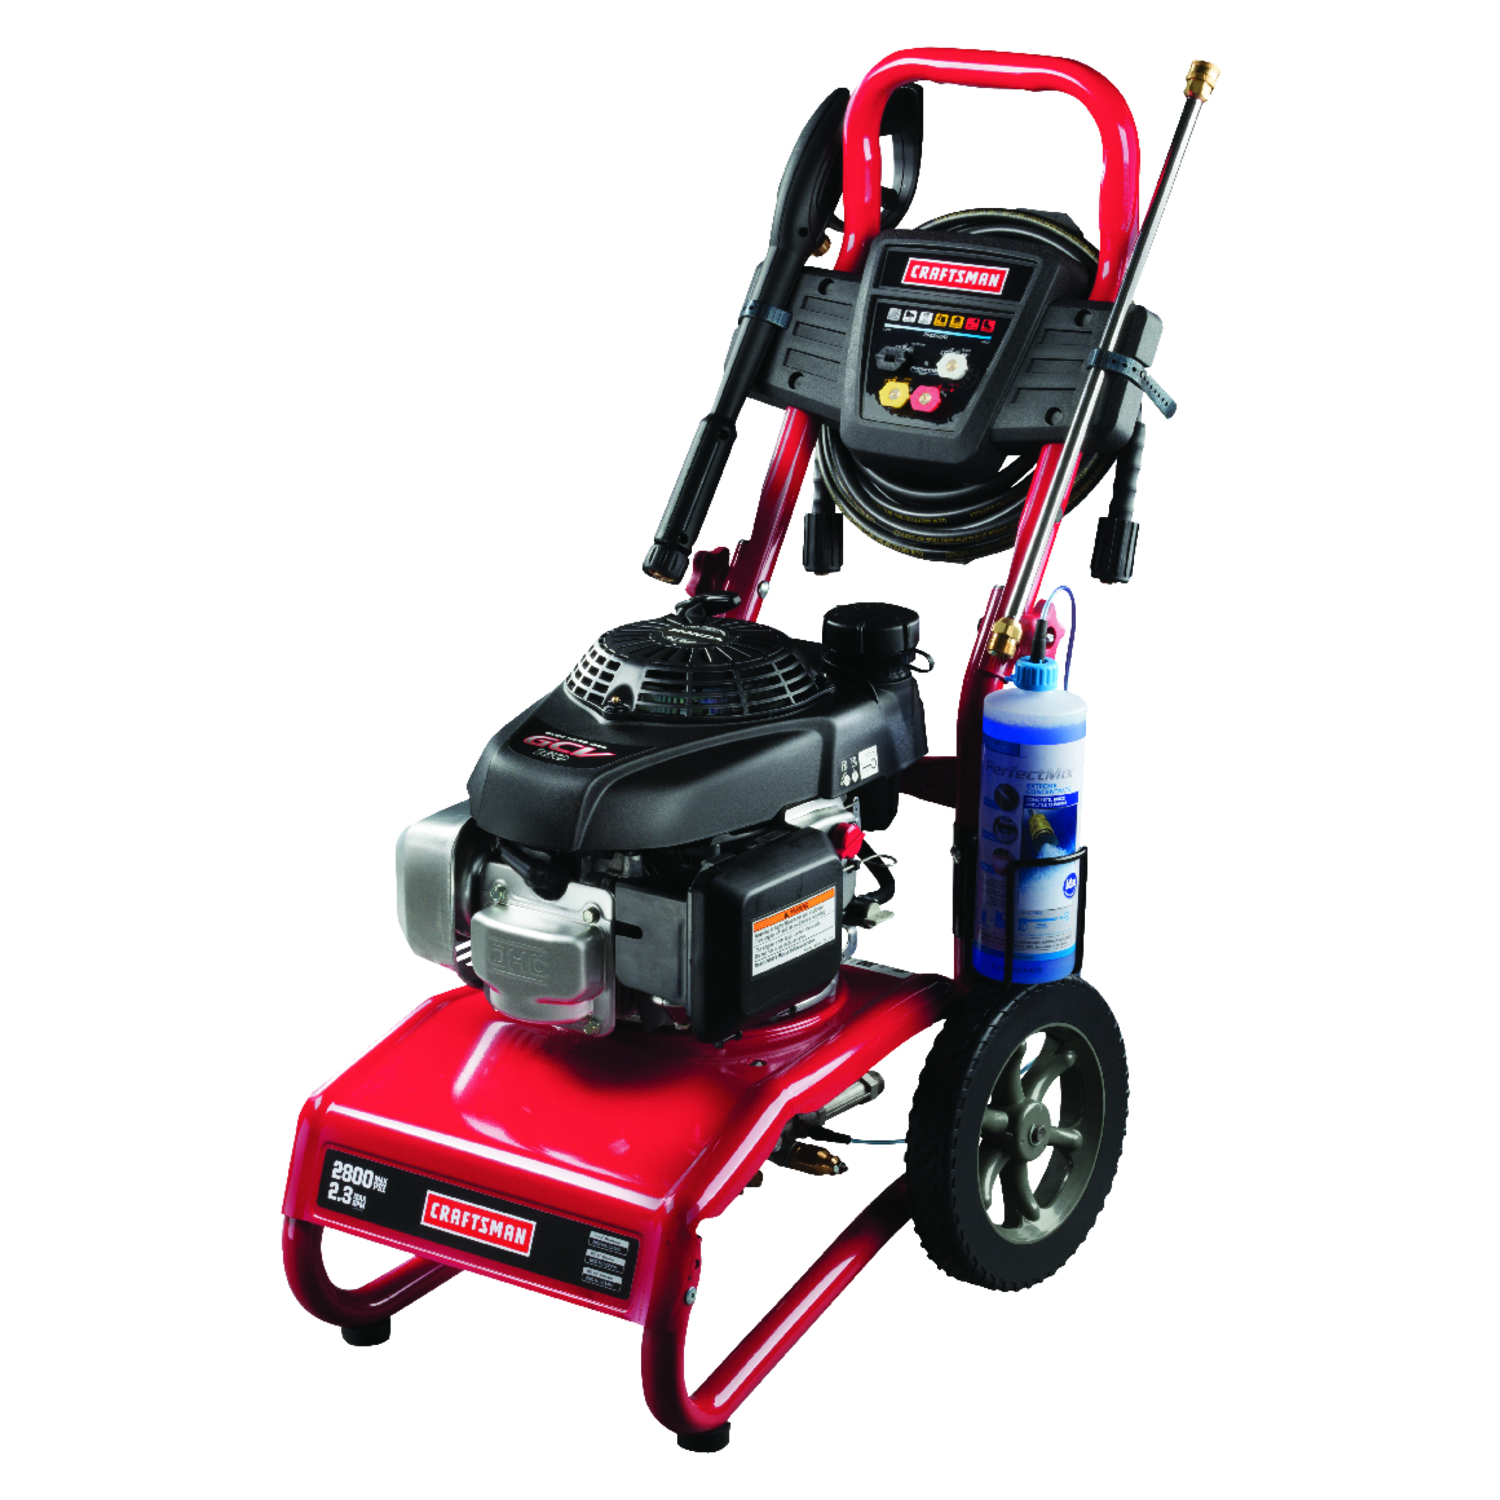 34ba8aa4 5887 4195 83dd 6816417aded7?max=300&quality=40&_mzcb=_1548080390199 pressure washers at ace hardware